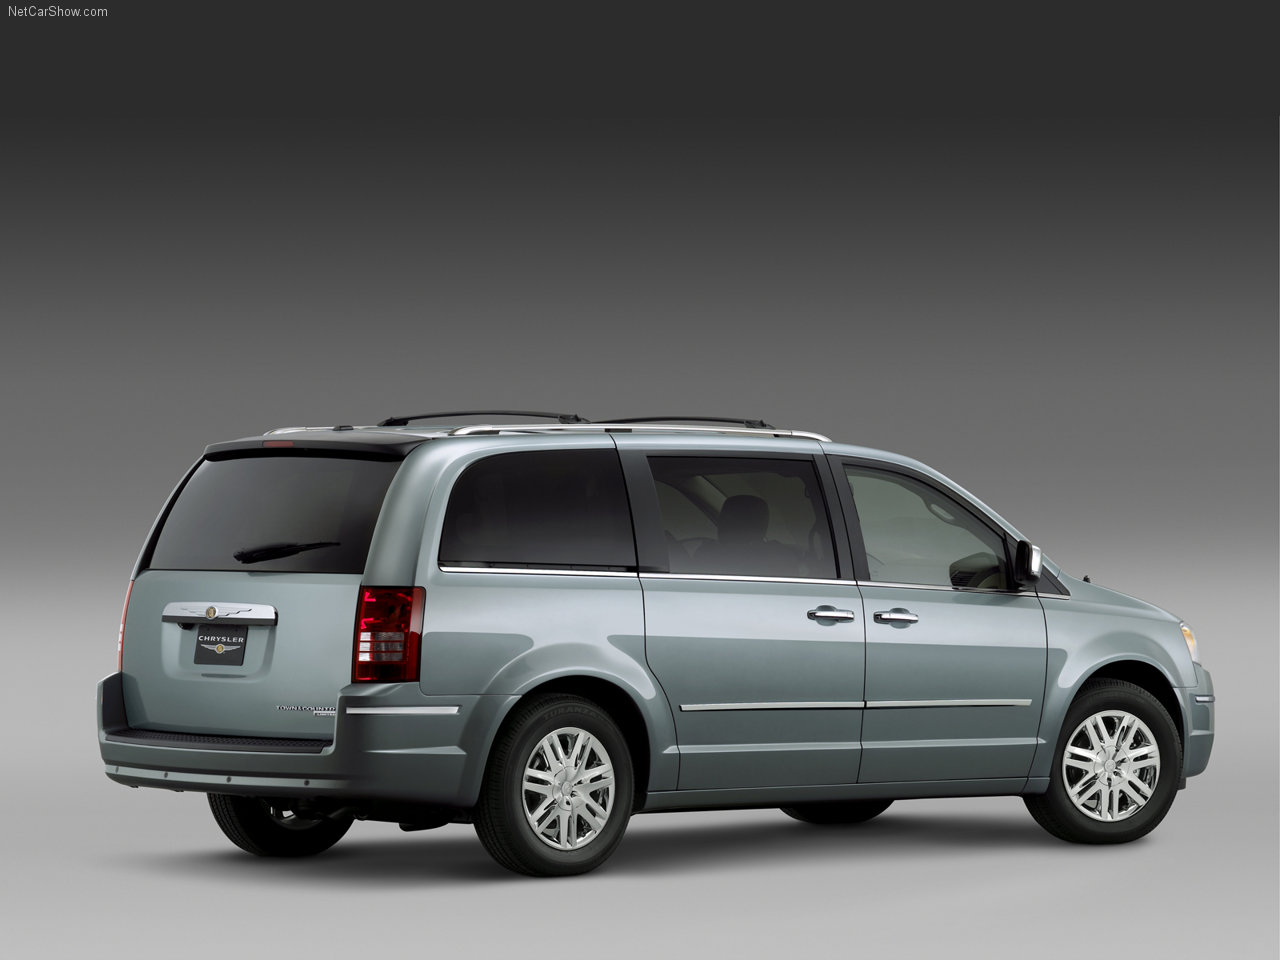 chrysler-town_and_country-2008-1280-04.jpg